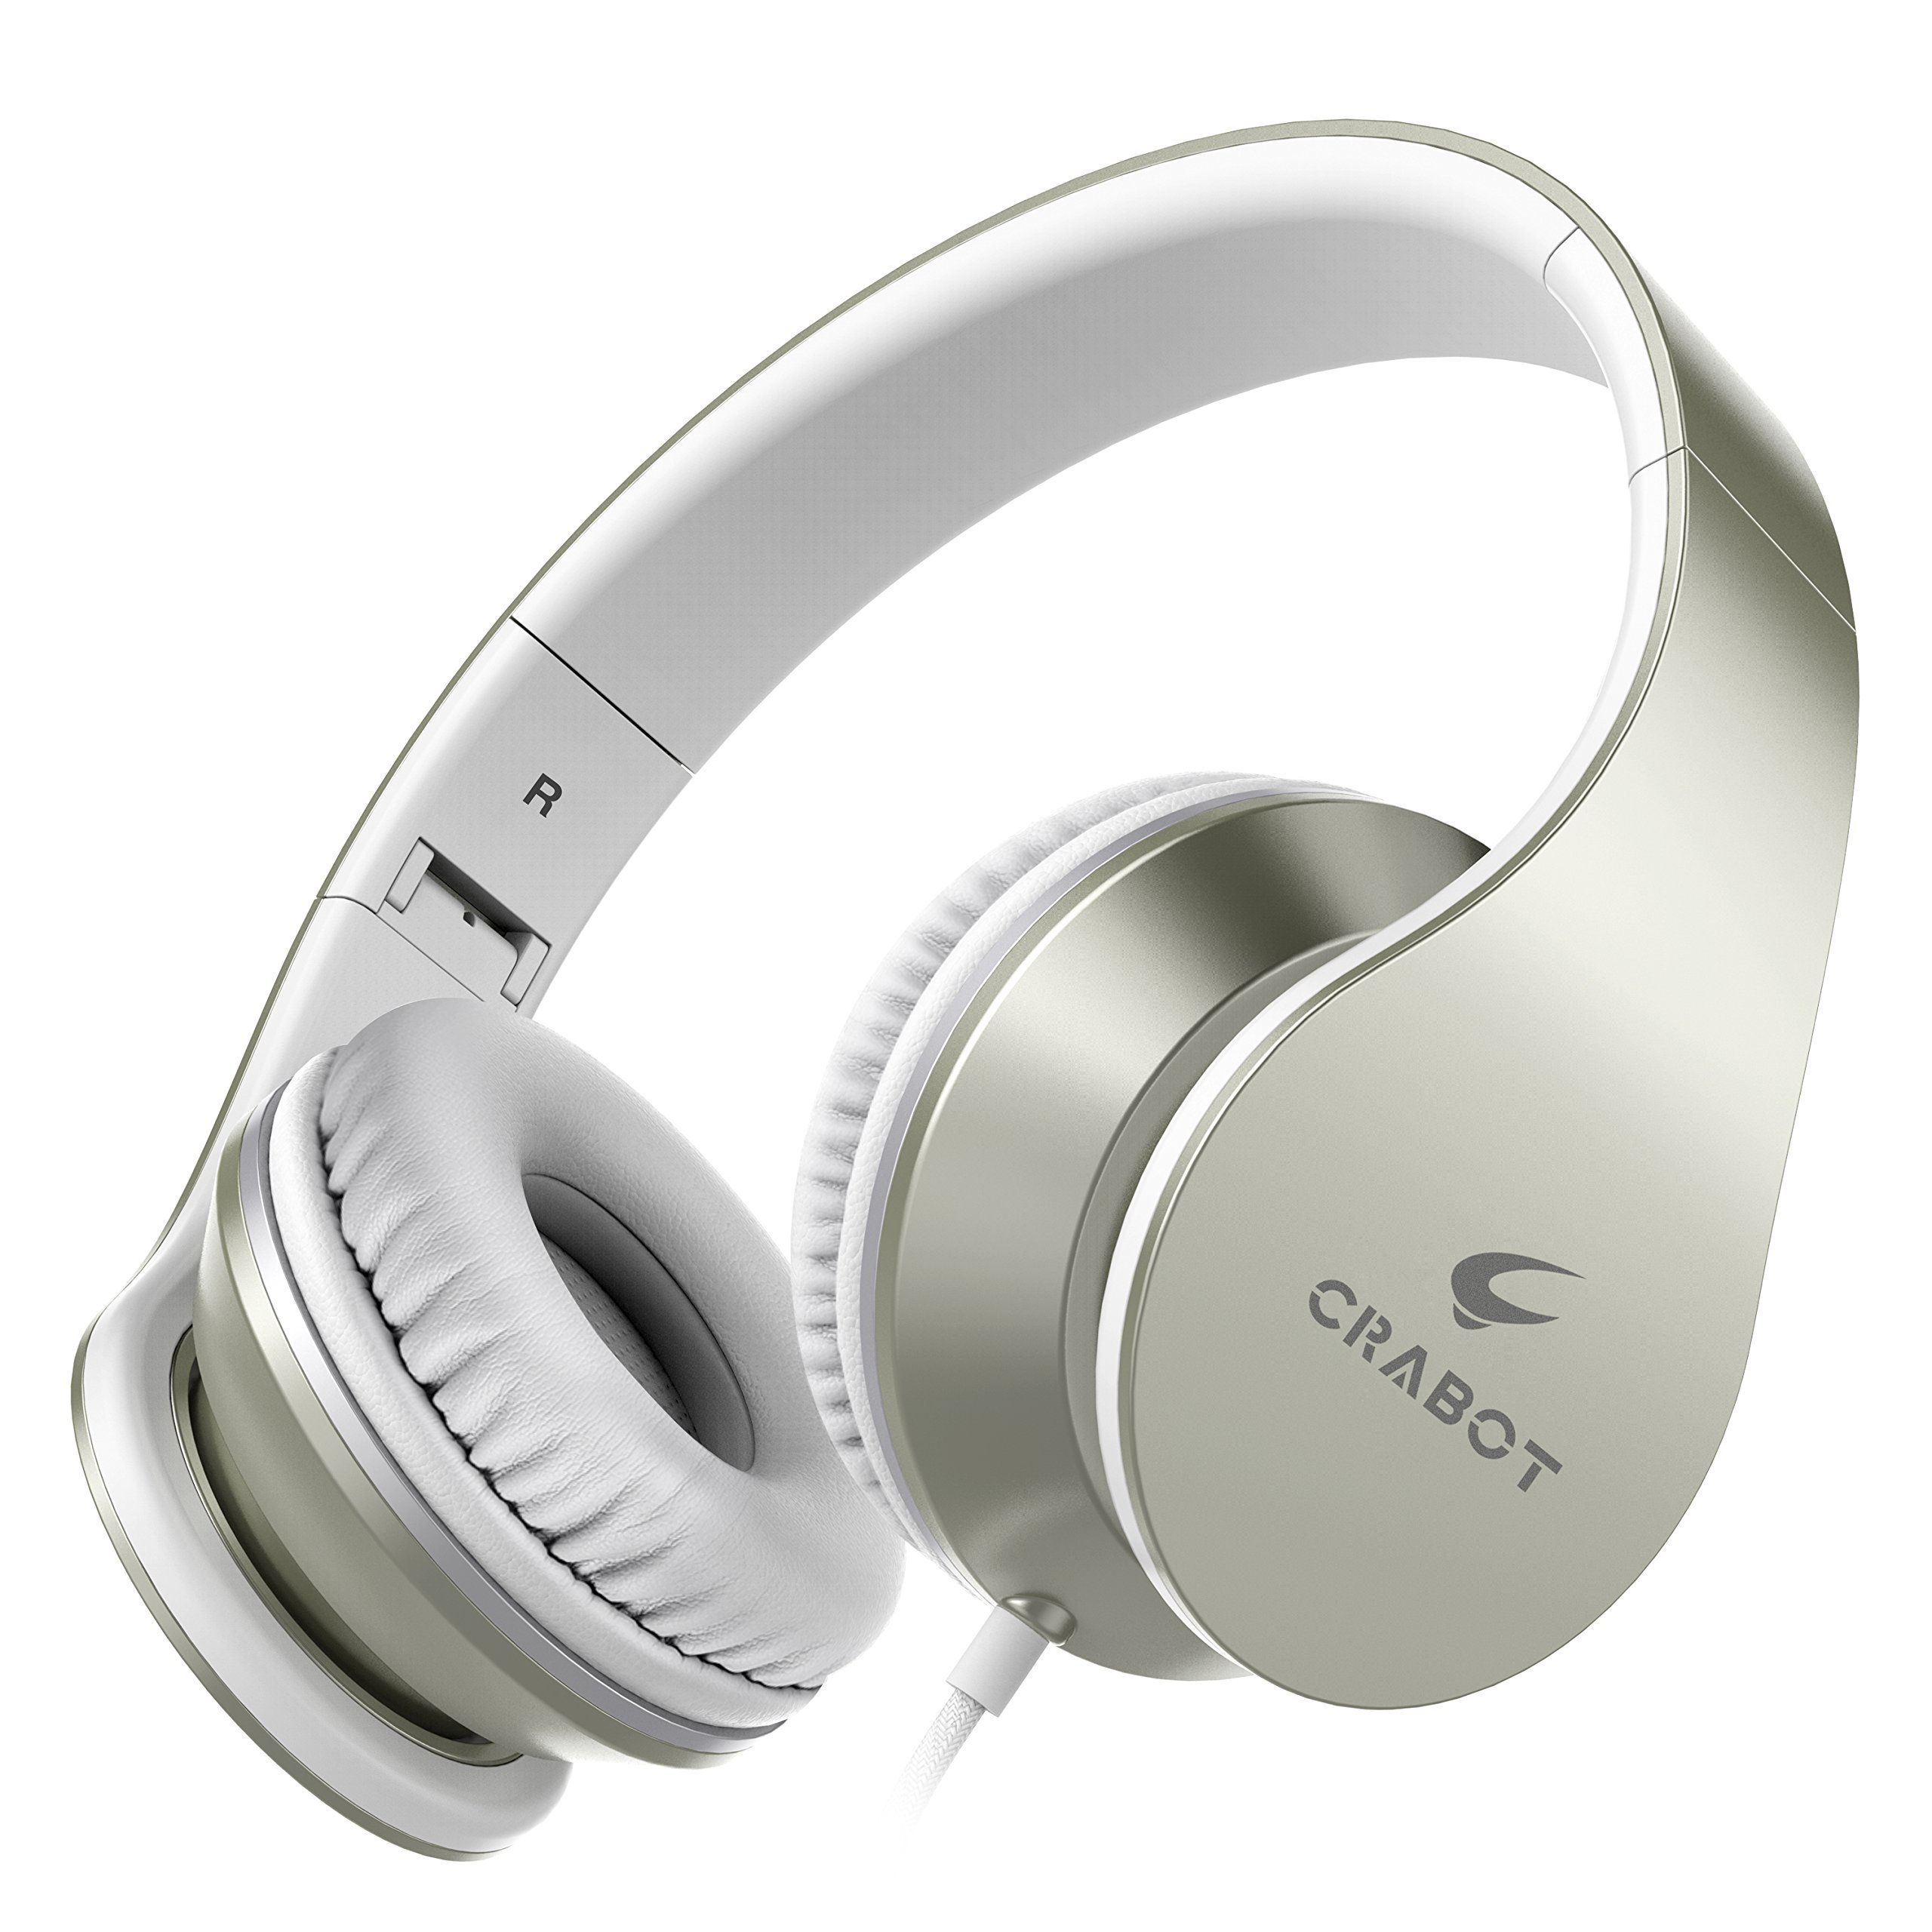 Headphones, Crabot I65 On-Ear Stereo Sound Bass Wired Portable Foldable Headsets with Microphone and Volume Control for iPhone iPad Android Smartphones Laptop Tablet for Kids or Adults(Champagne gold)